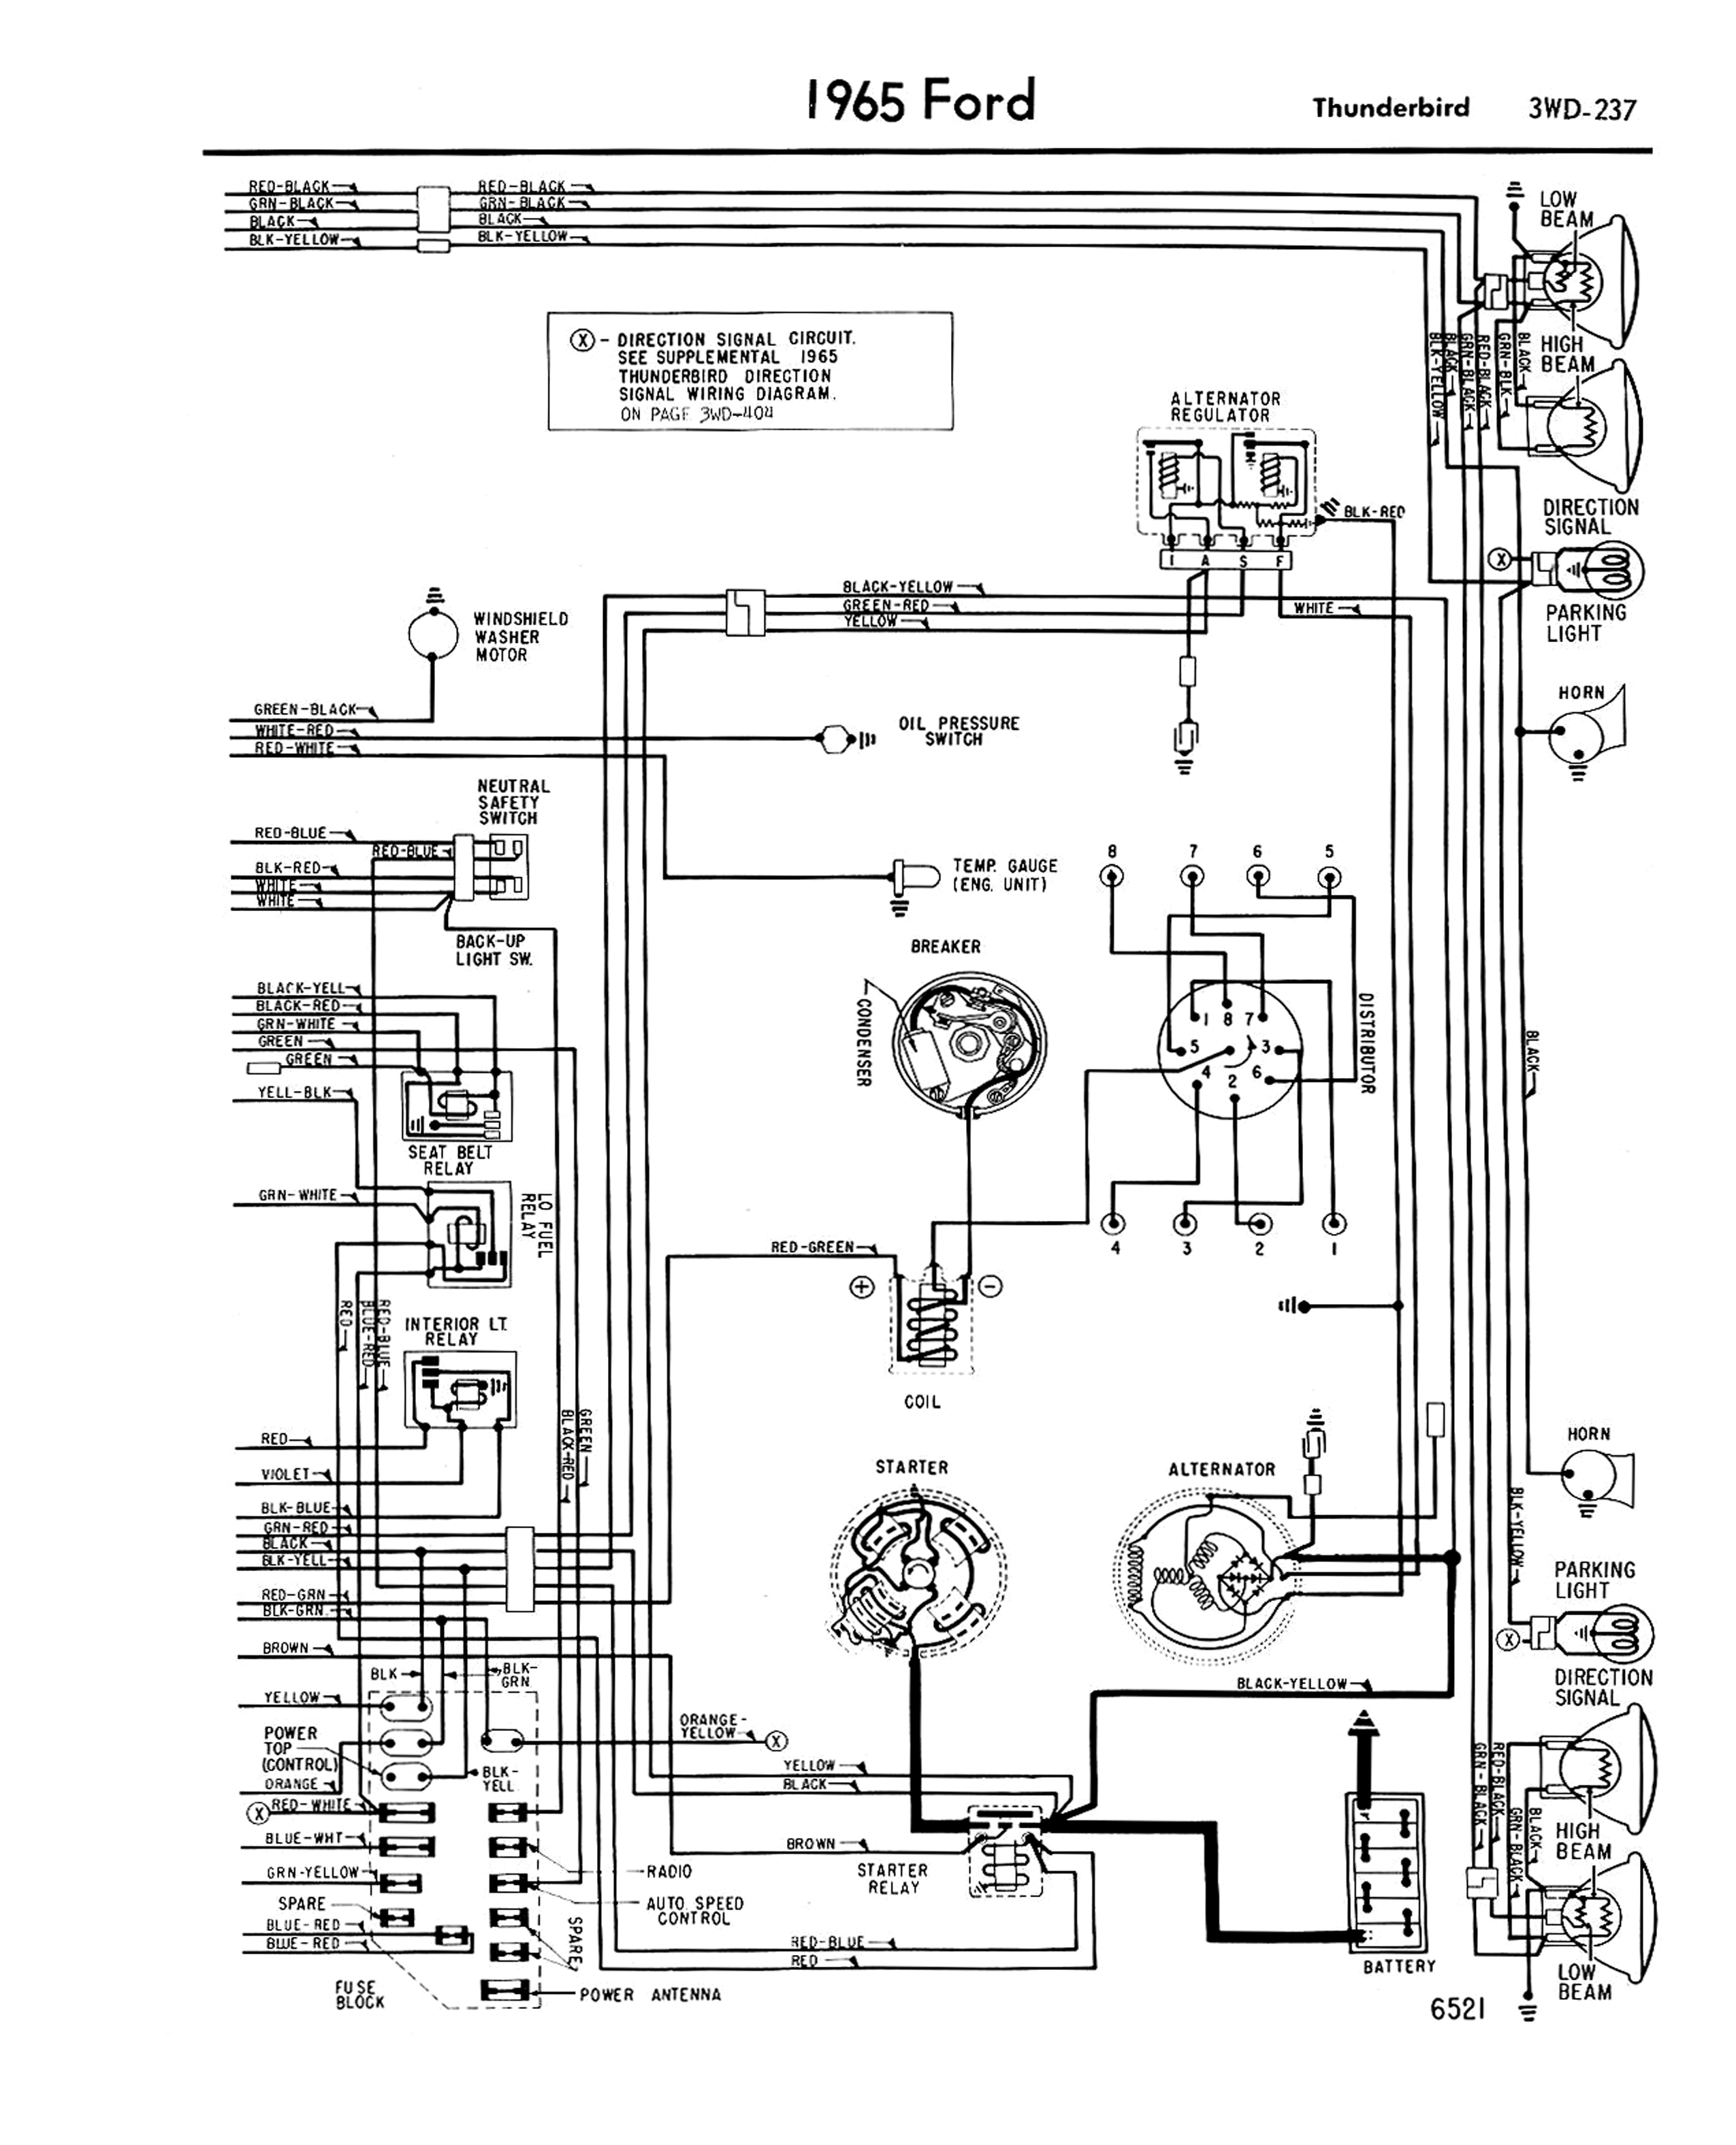 turn signal wiring schematic wiring diagram 67 mustang turn signal wiring diagram